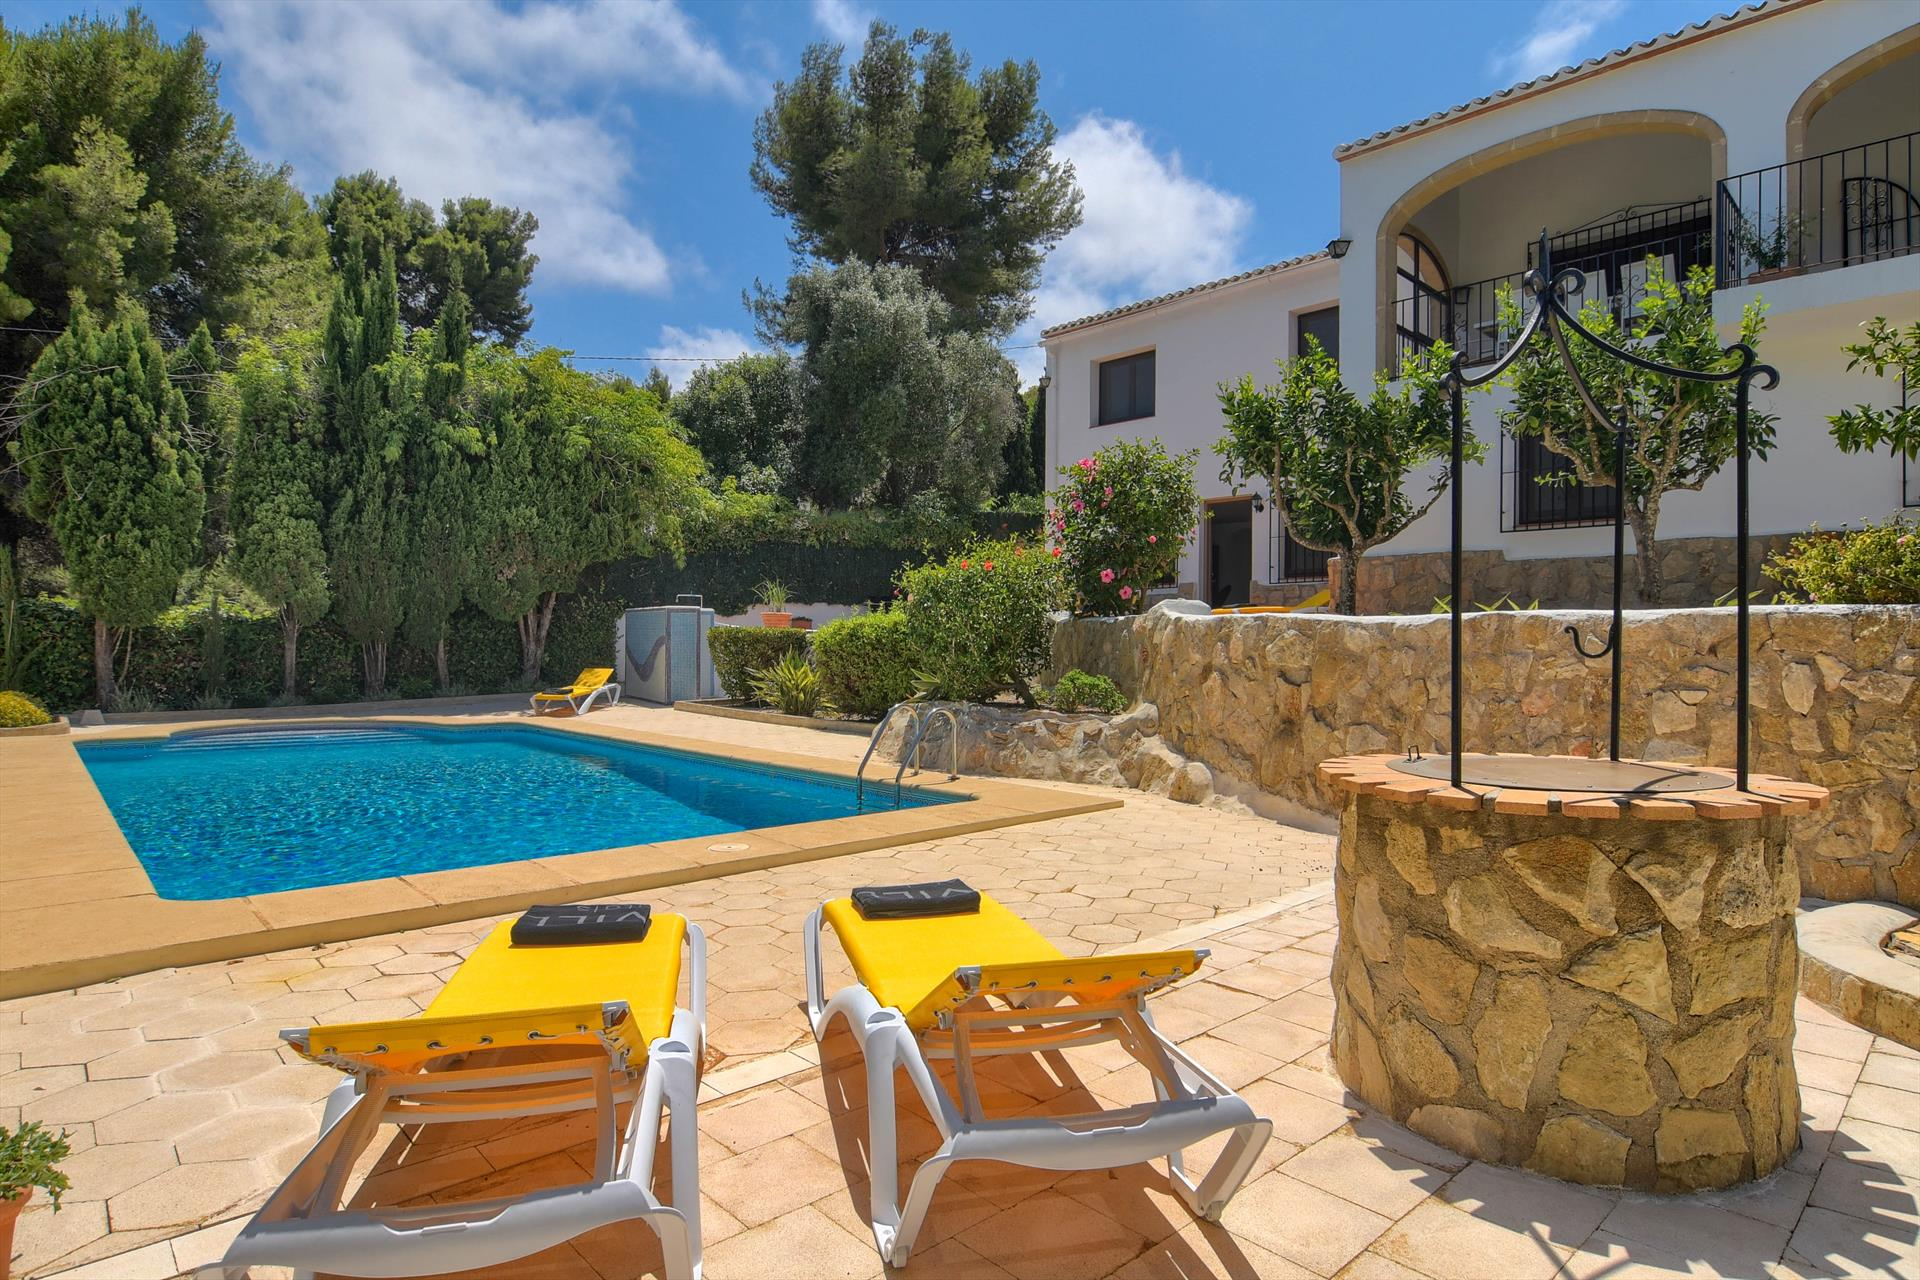 Mithra 8 pax,Classic and cheerful holiday house  with private pool in Javea, on the Costa Blanca, Spain for 8 persons.....